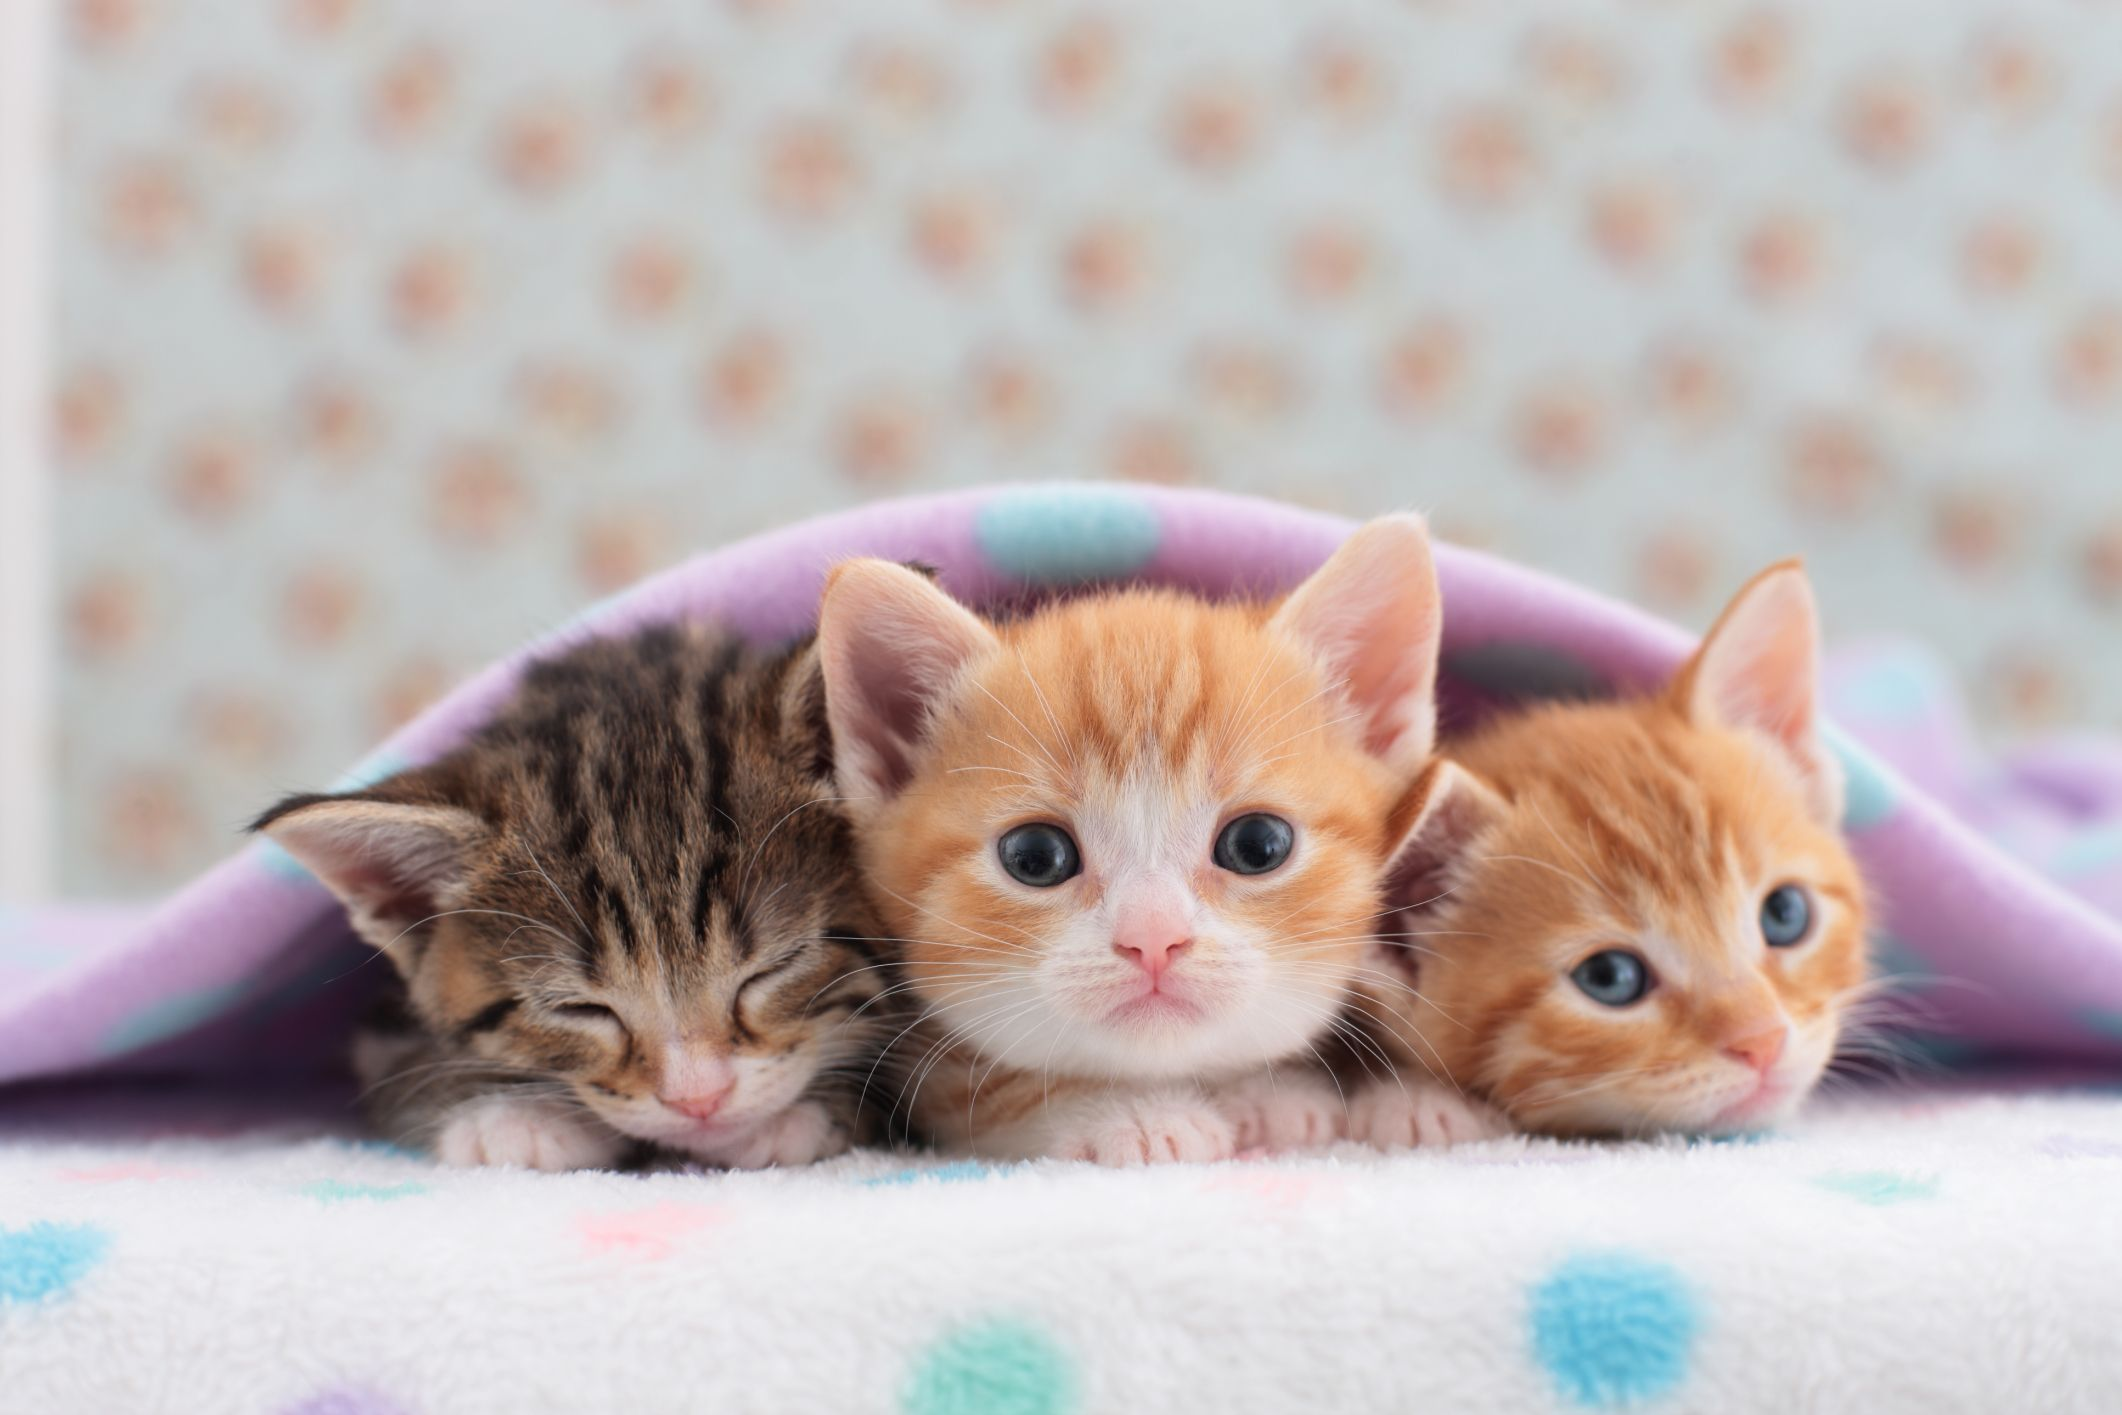 Cats that Stay Small - Tiny Kittens For Your Tiny Home